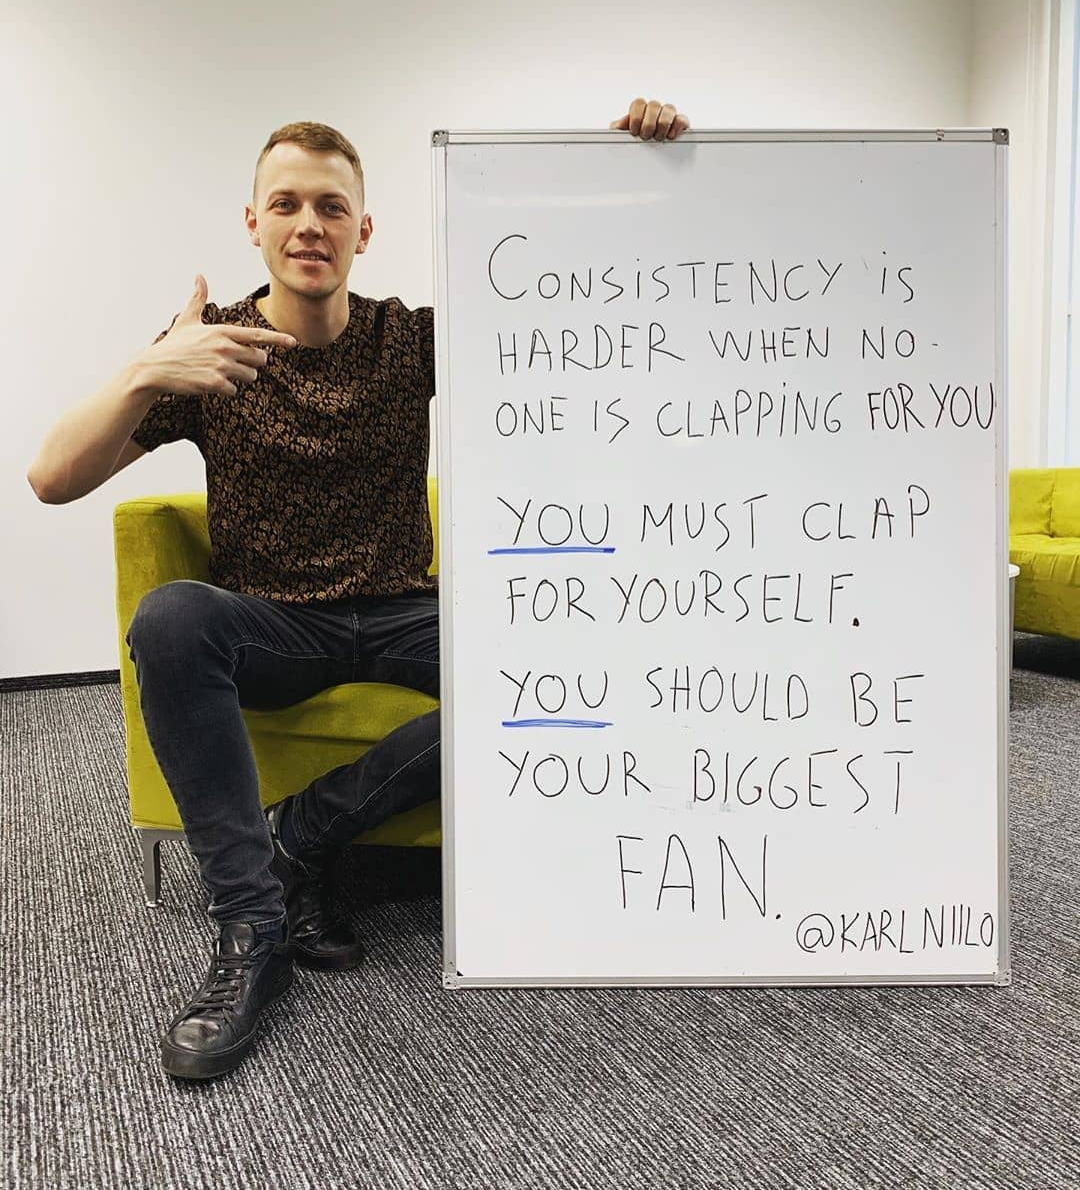 [image] You should be your biggest fan.